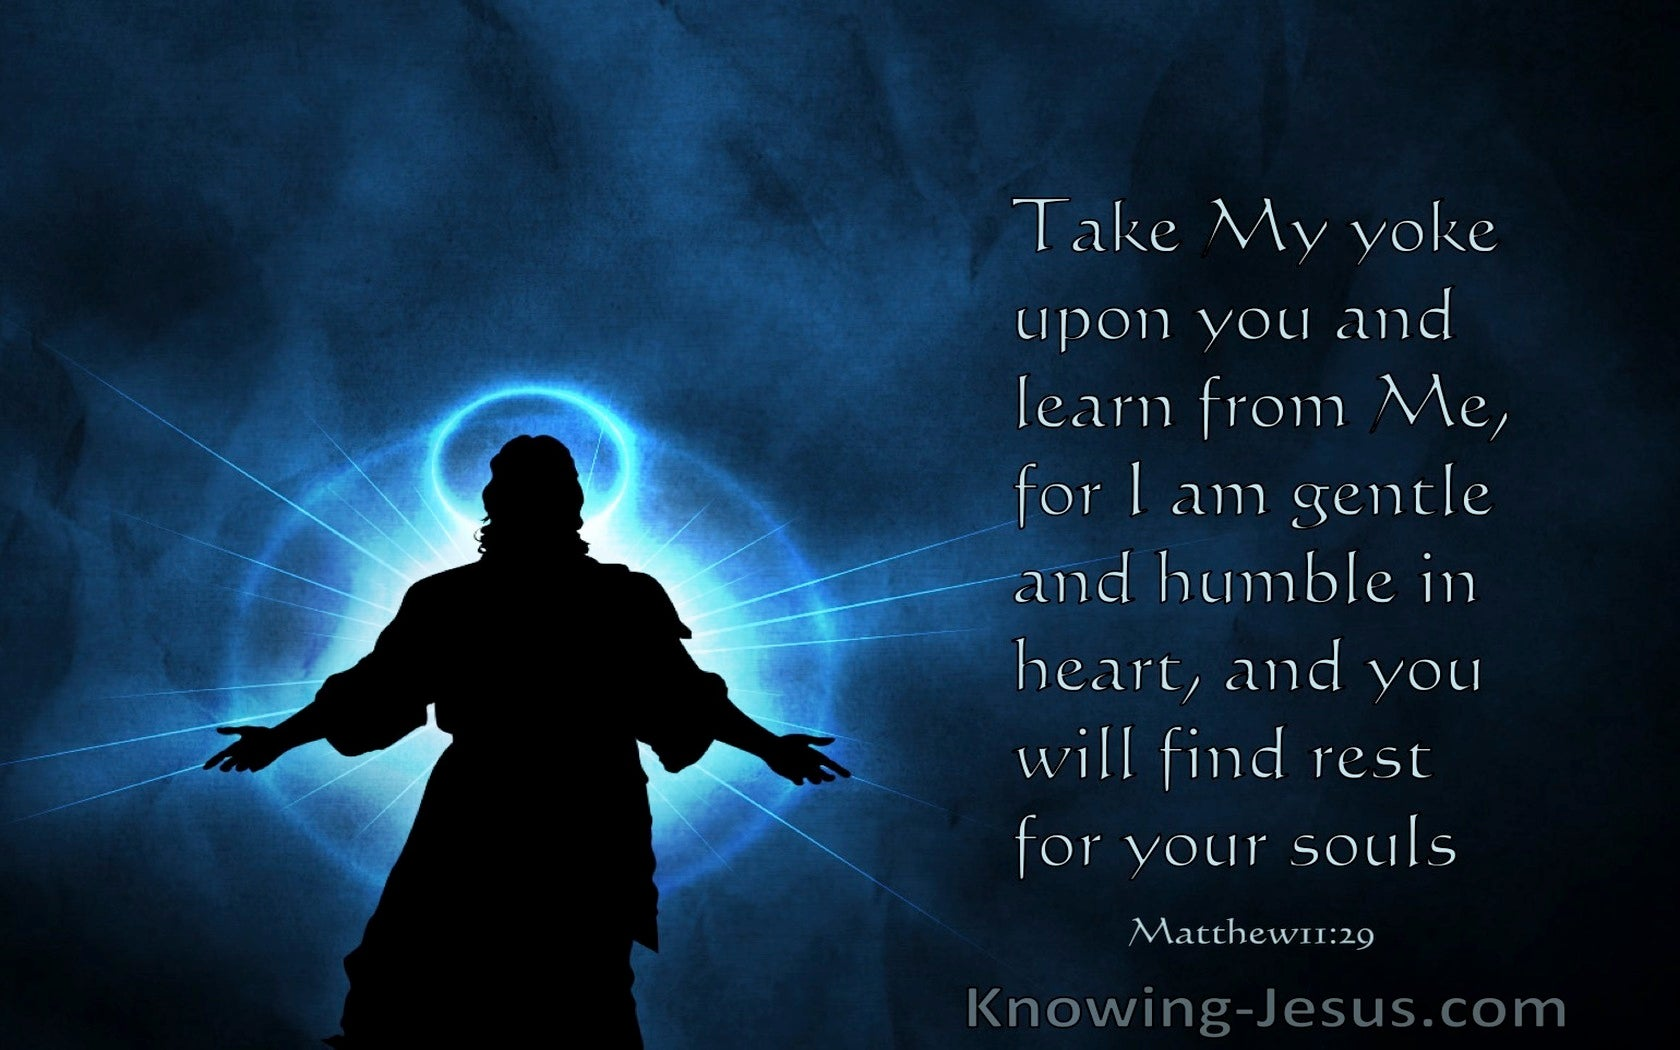 Matthew 11:29 Take My Yoke Upon You And Learn From Me (windows)03:11